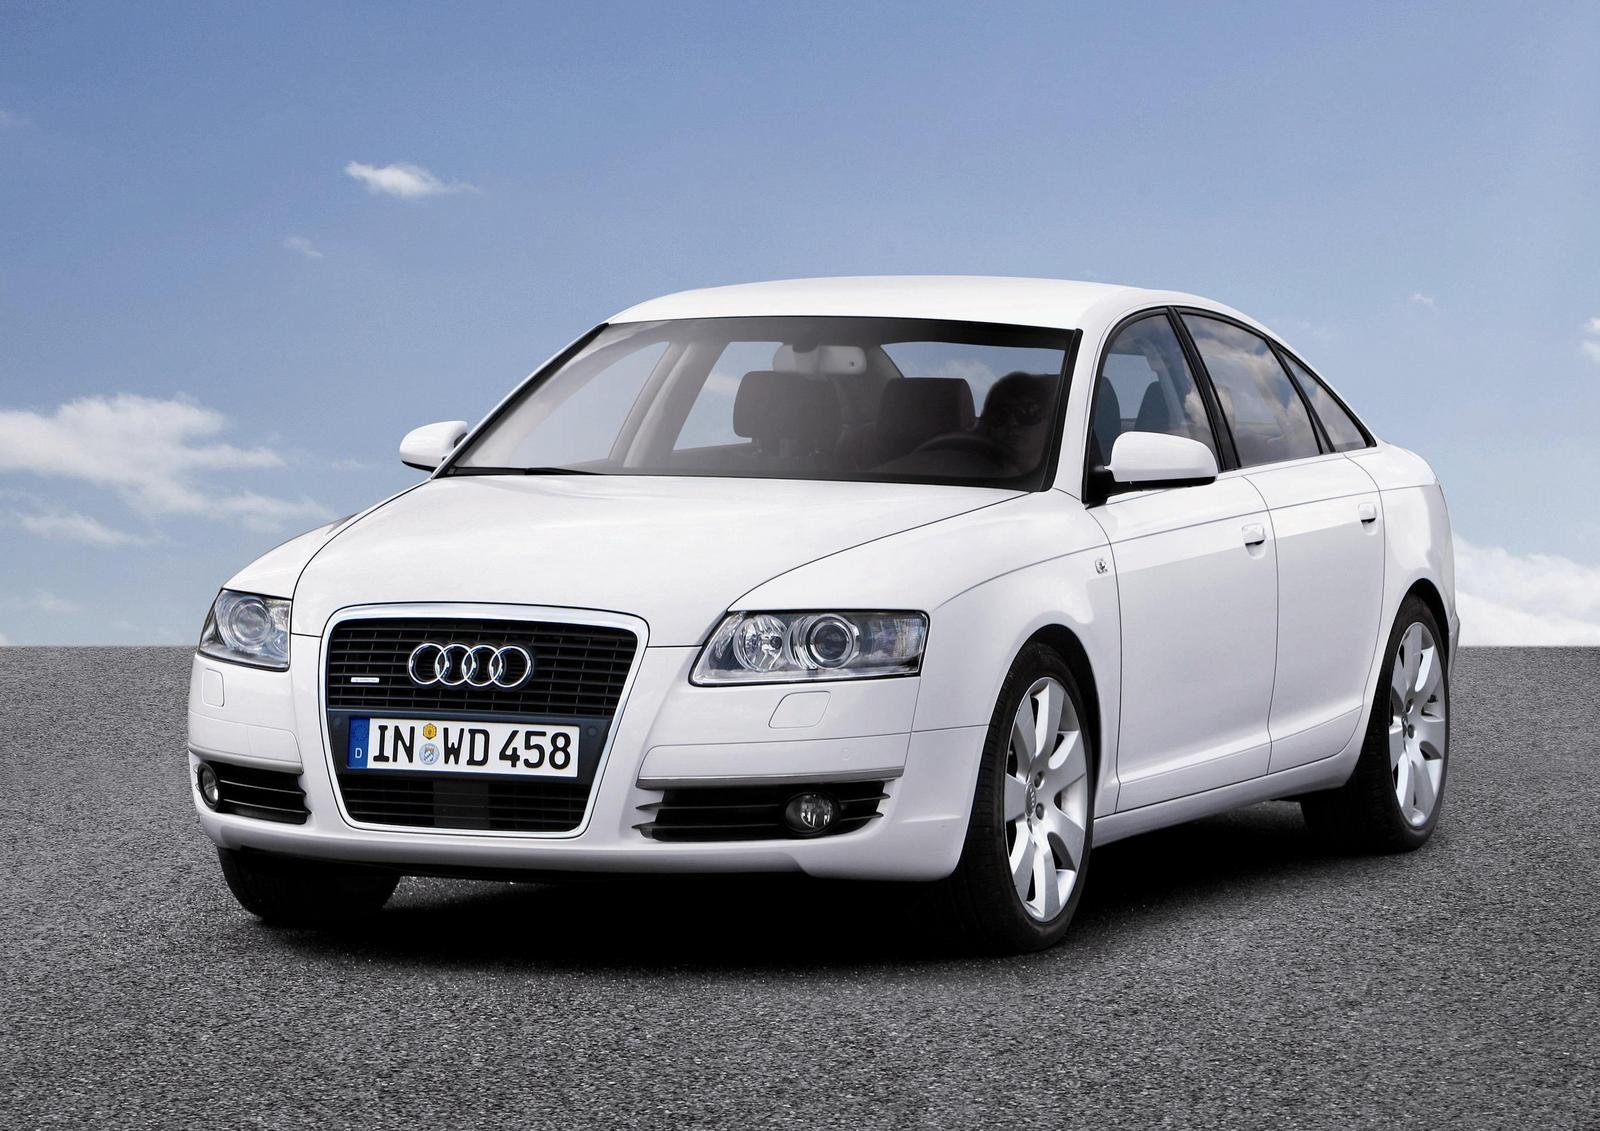 2010 audi a6 picture 217499 car review top speed. Black Bedroom Furniture Sets. Home Design Ideas